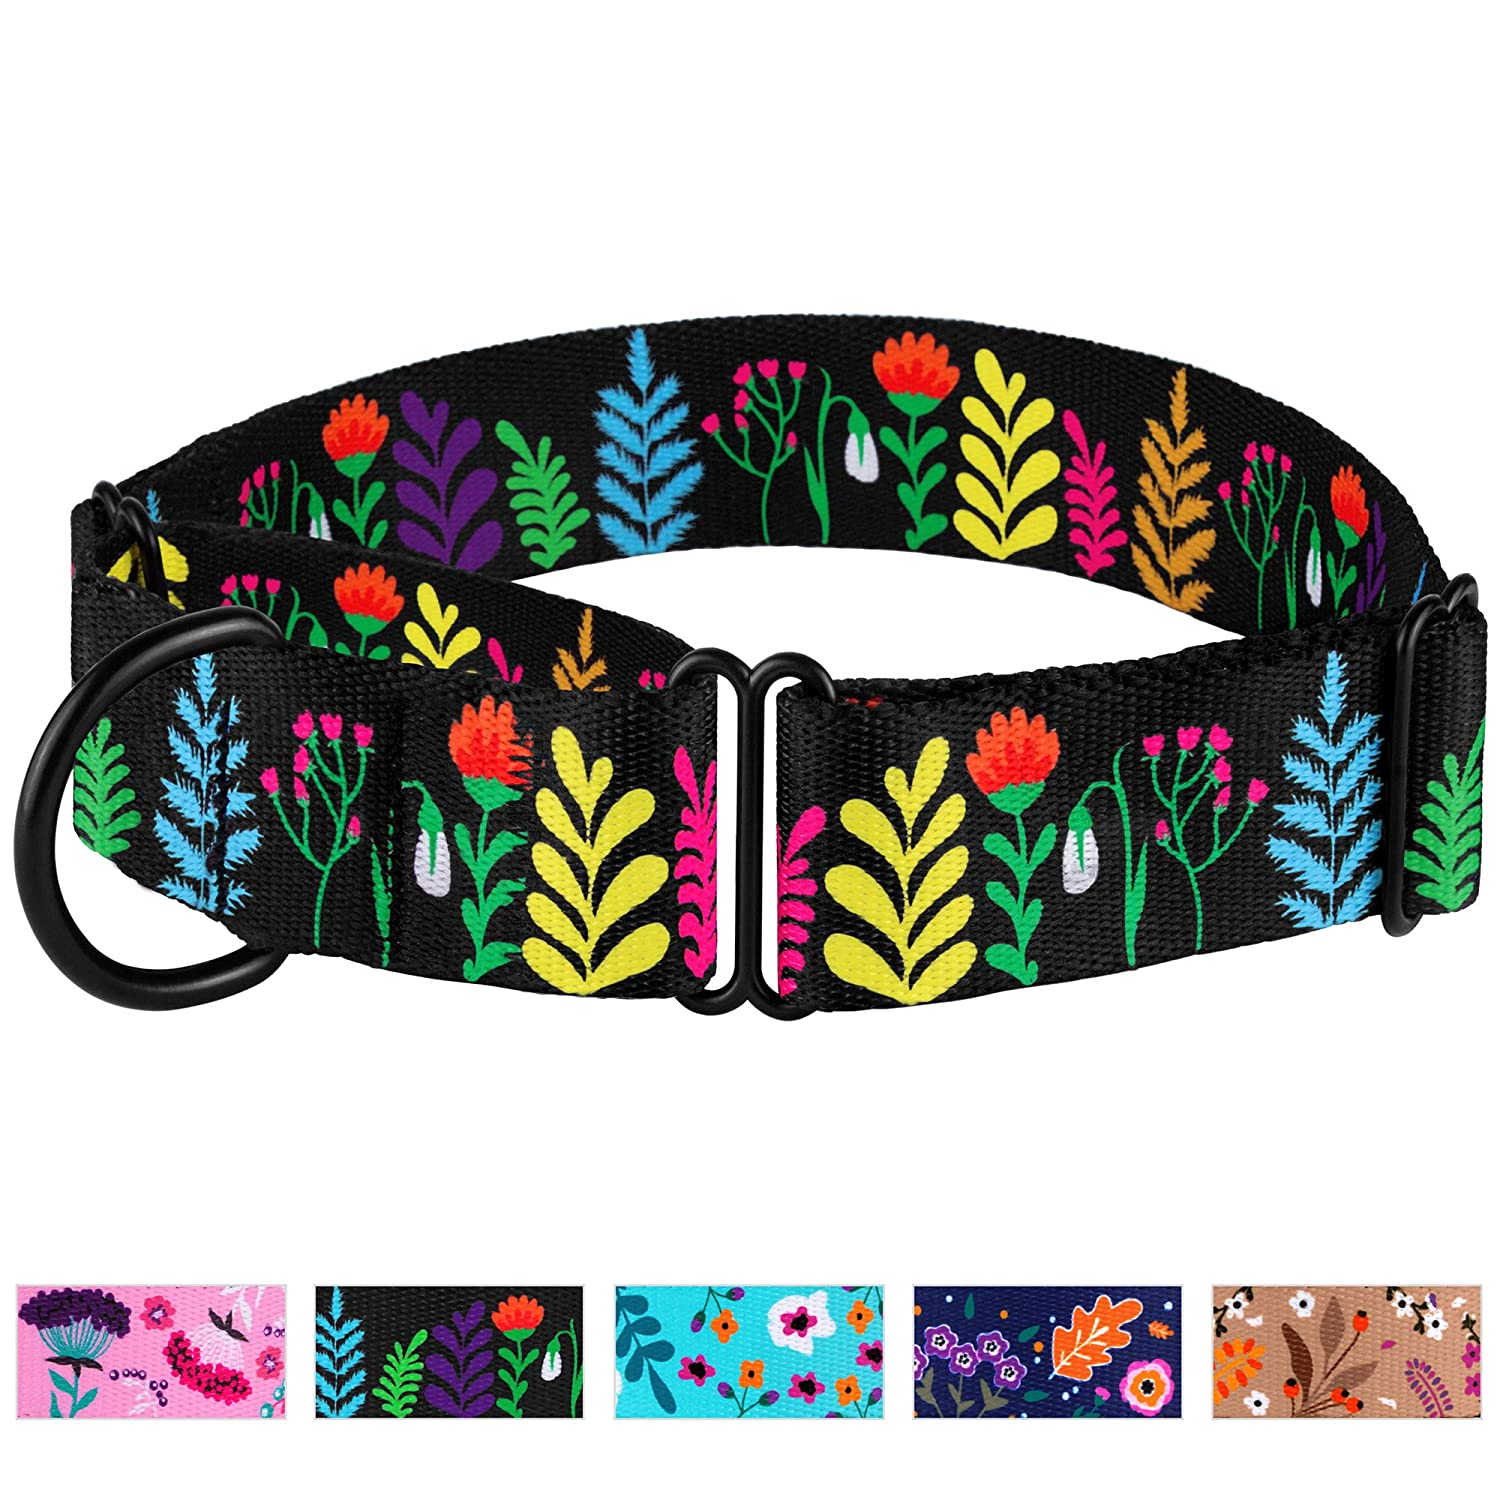 CollarDirect Martingale Collars for Dogs Heavy Duty Floral Pattern Female Safety Nylon Training Wide Collar Flower Design Large Medium